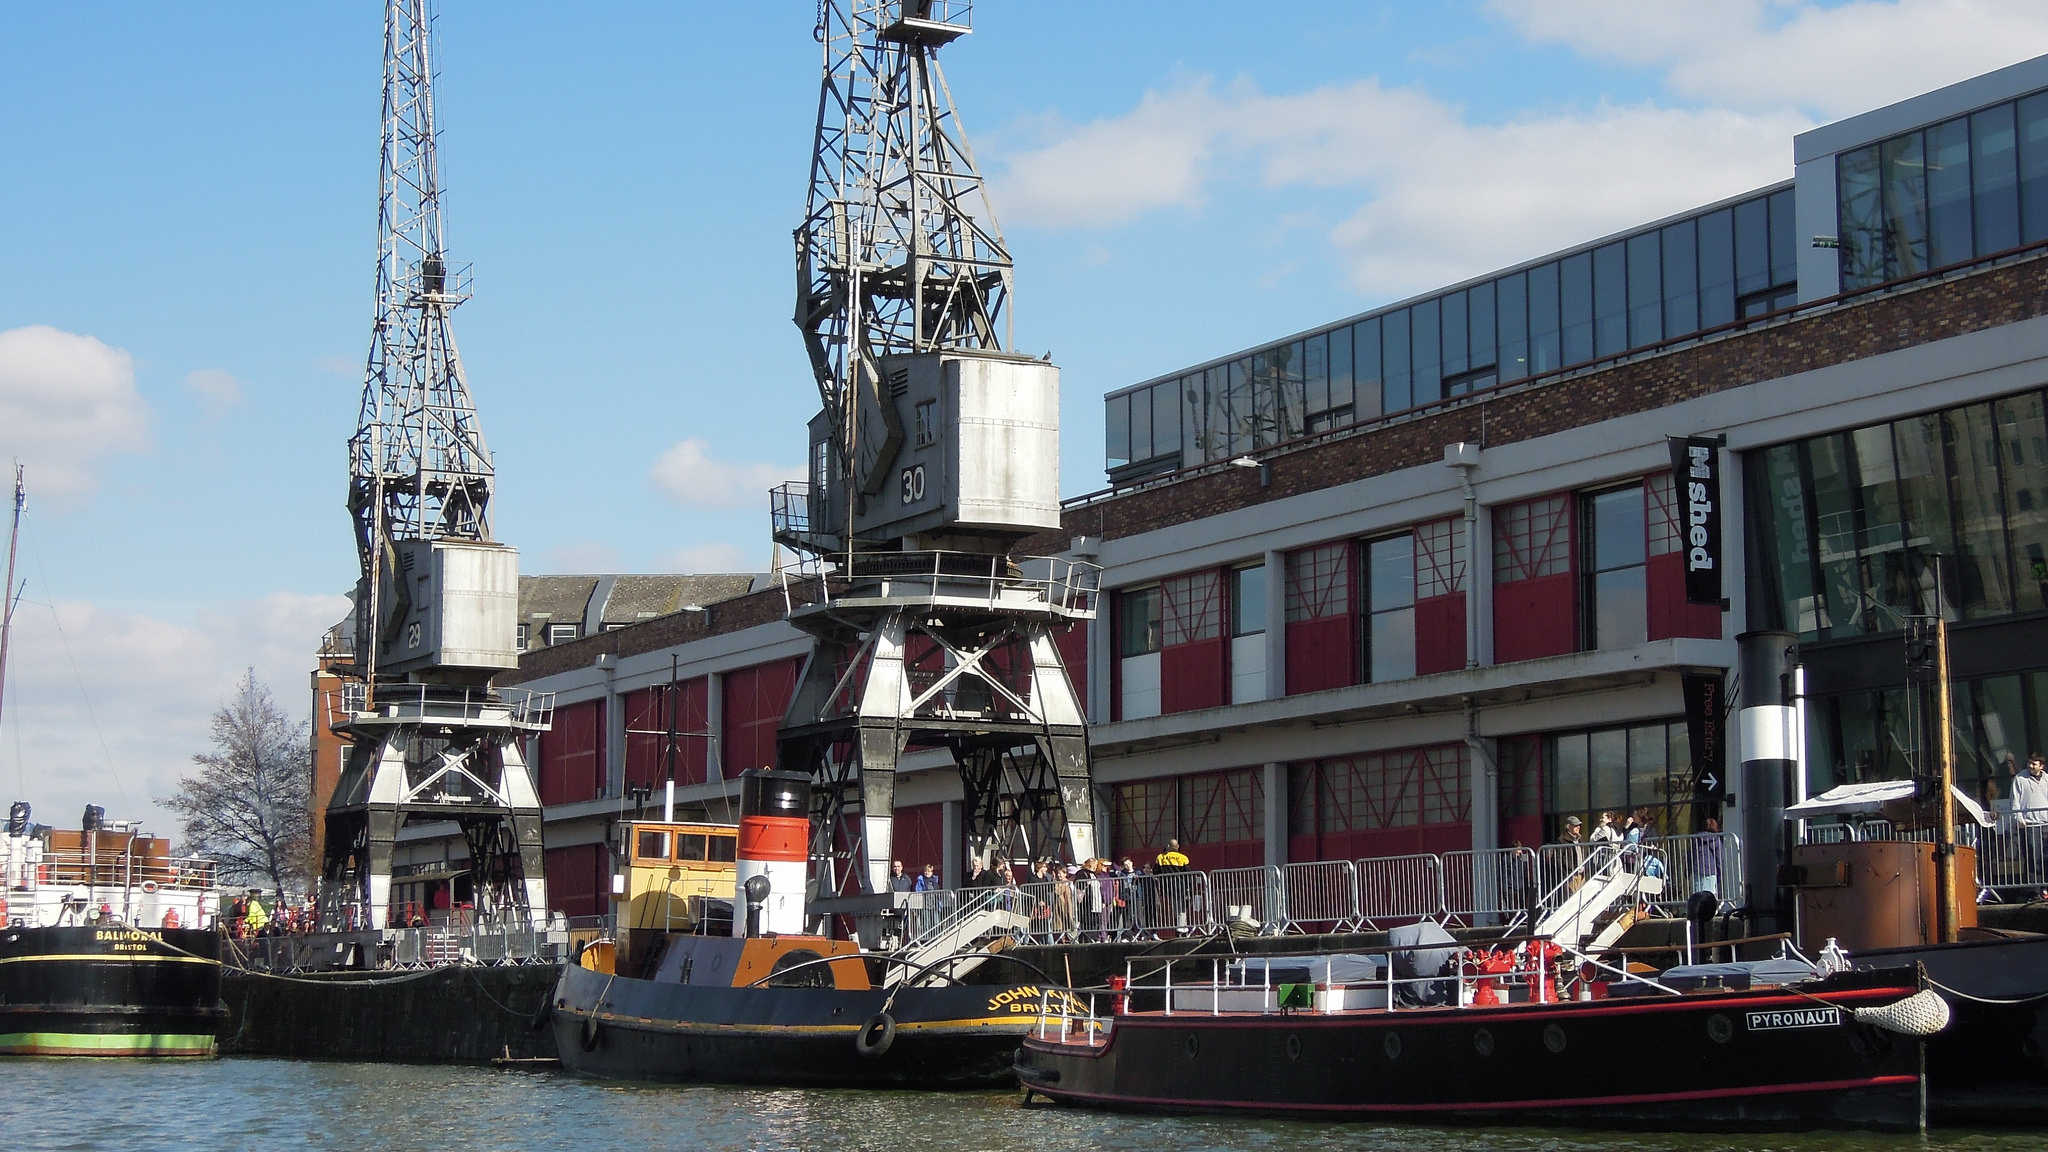 Example of a cranes in Bristol, UK. Photo: David McKelvey CC BY-NC-ND 2.0